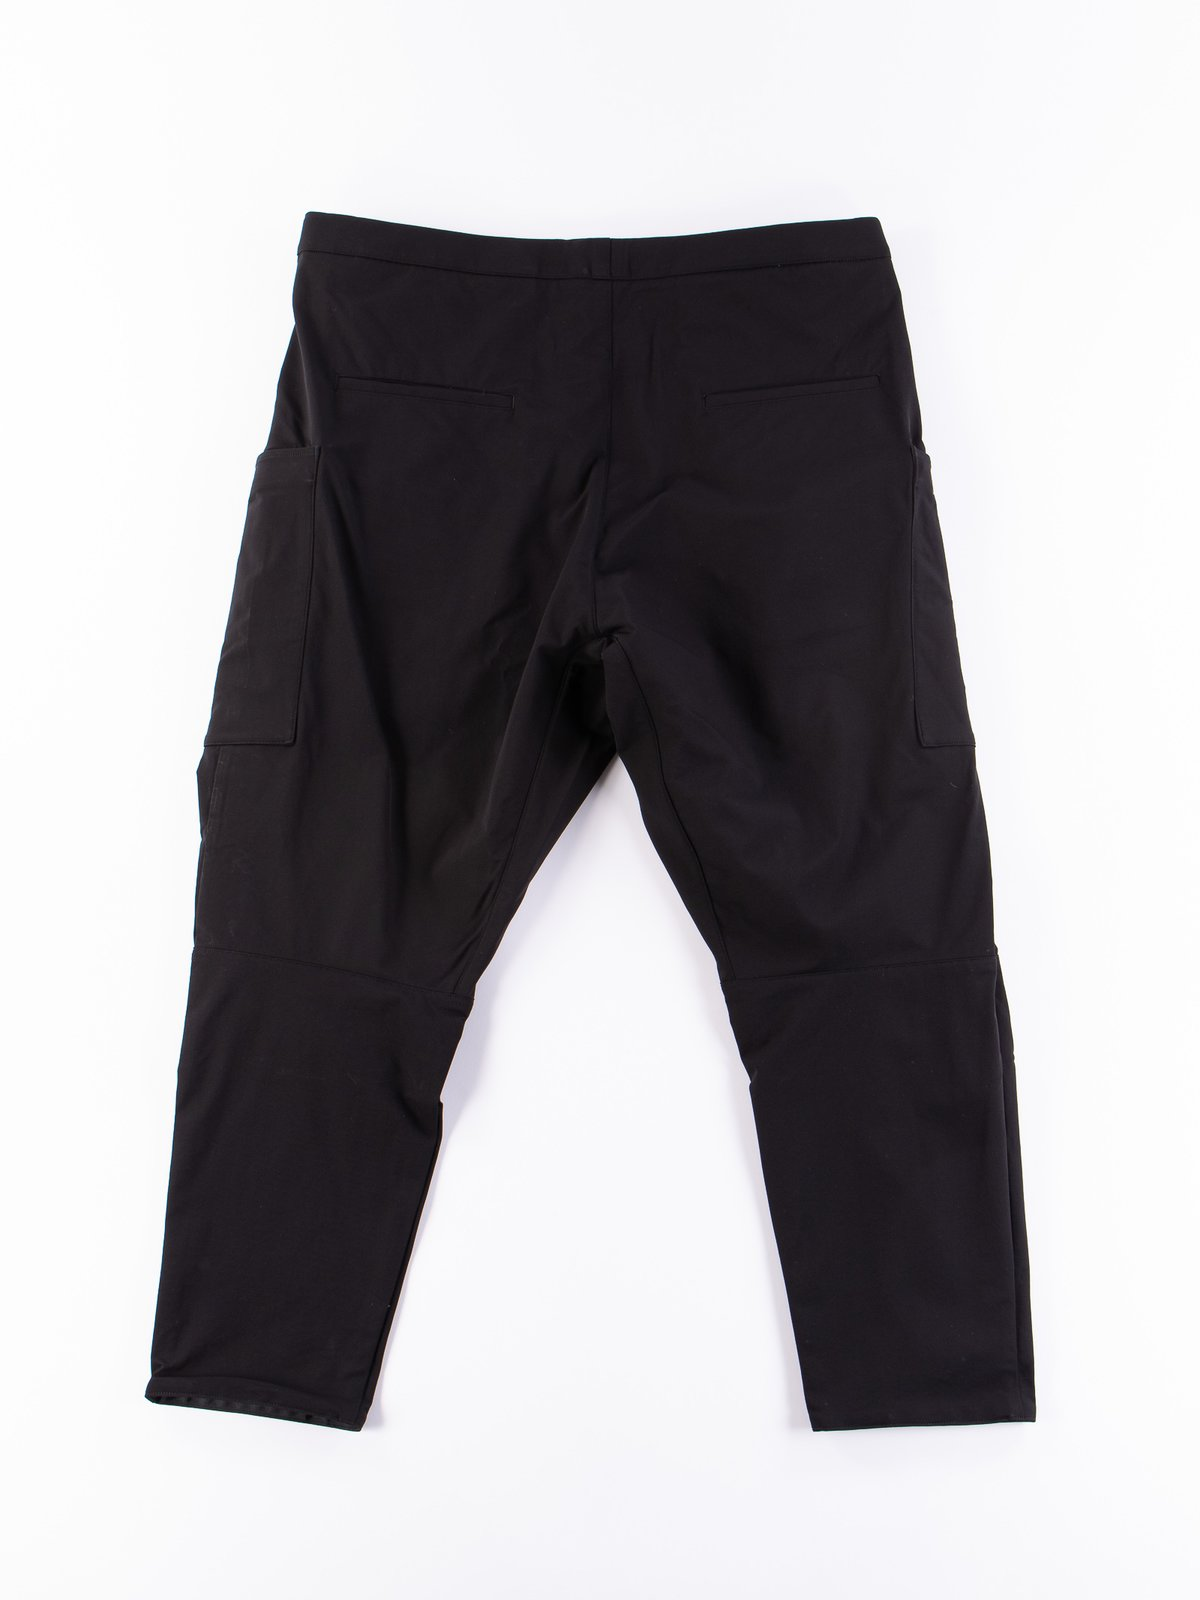 P31A–DS Black Schoeller Dryskin Drawcord Cargo Trouser - Image 5